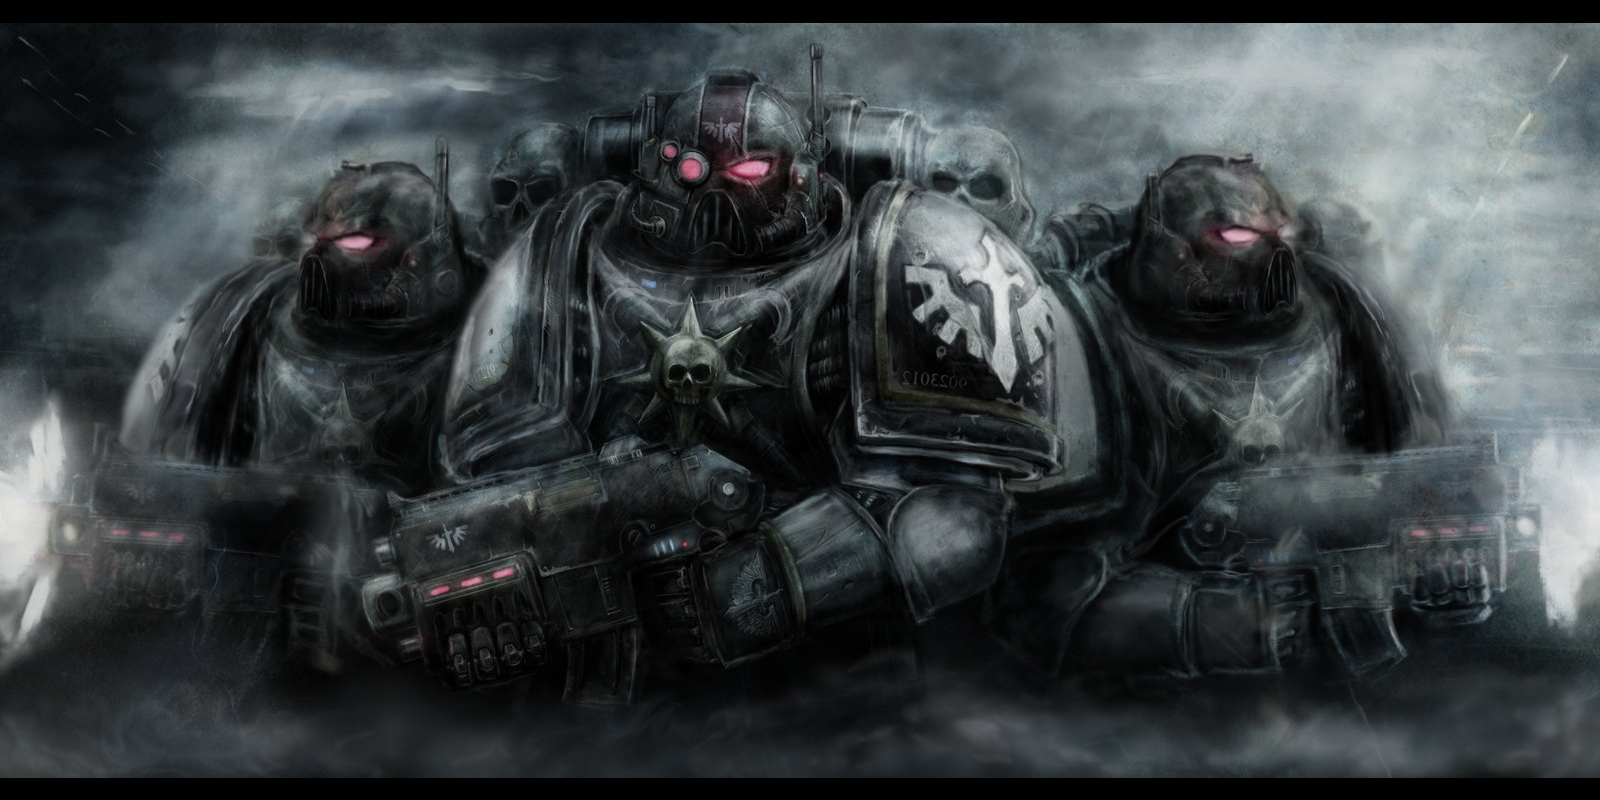 Warhammer 40k Computer Wallpapers Desktop Backgrounds 1600x800 ID 1600x800